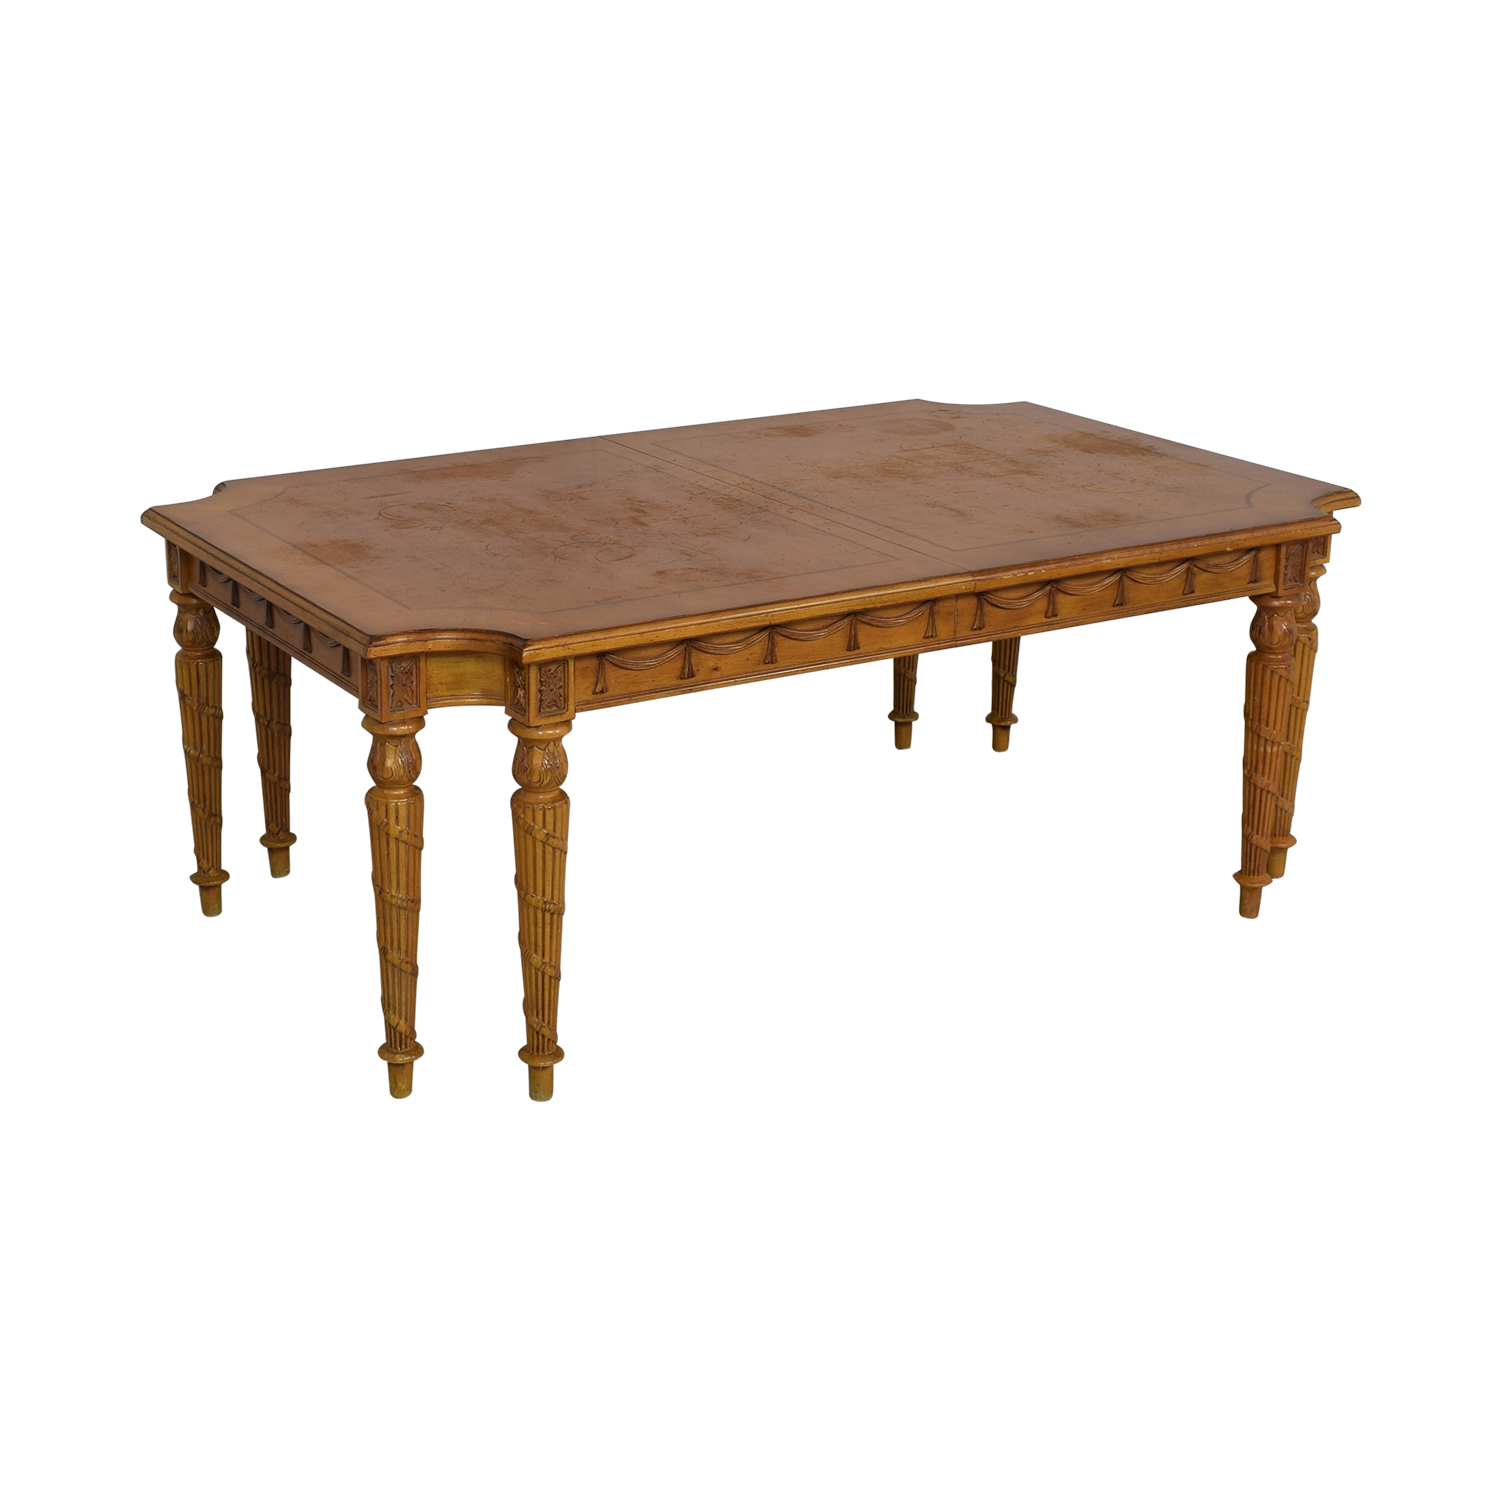 buy Century Furniture Century Furniture Dining Table online